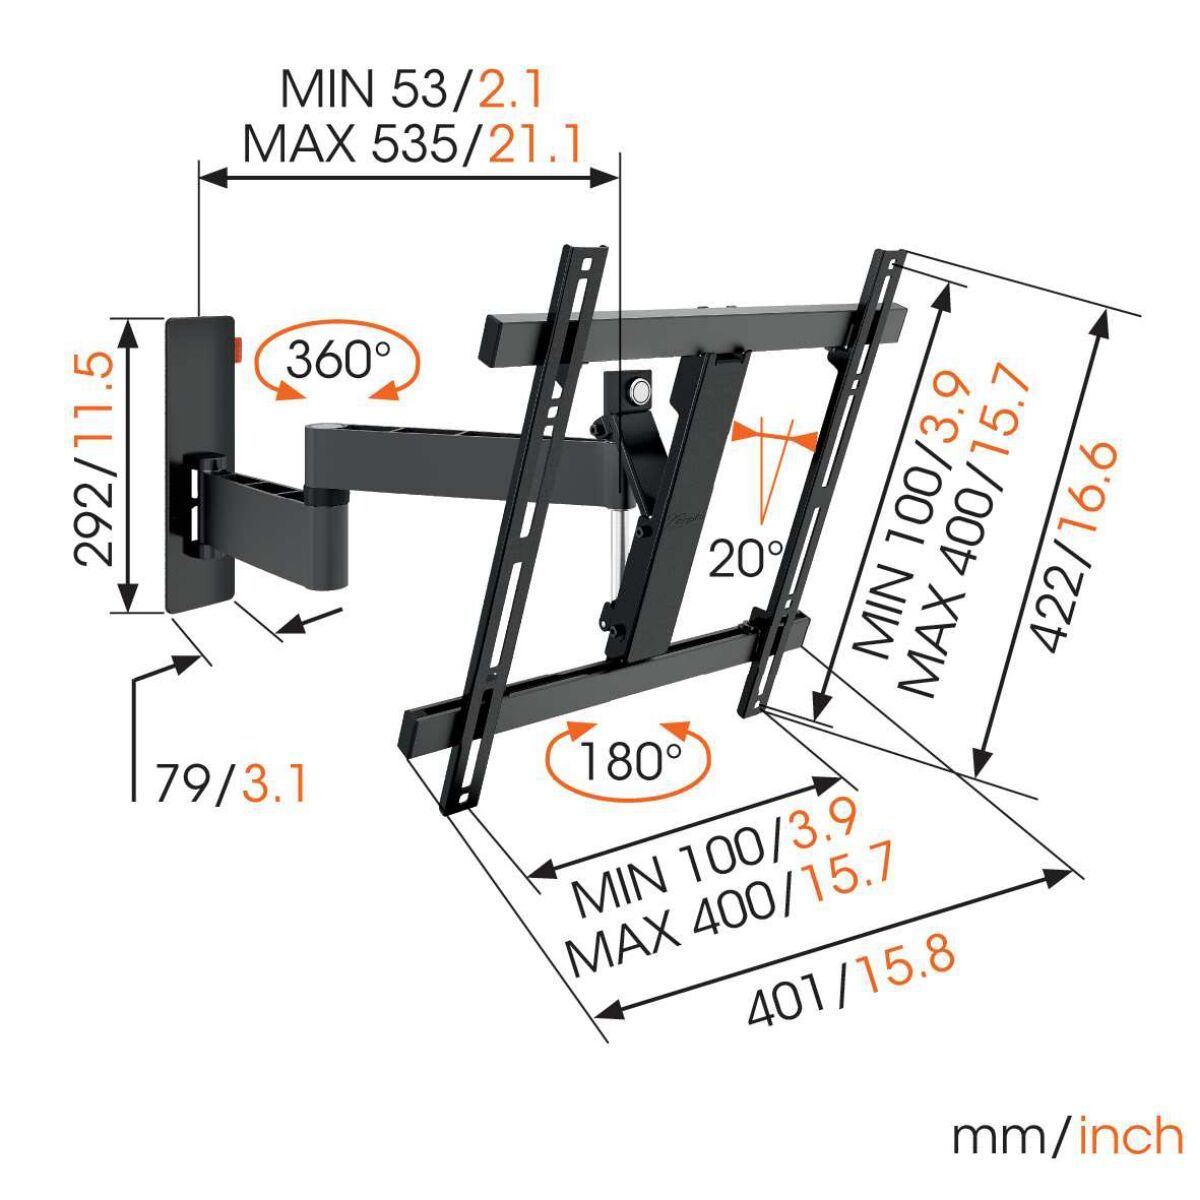 Vogel's WALL 3245 Full-Motion TV Wall Mount (black) - Suitable for Full motion (up to 180°) - Suitable for Tilt up to 20° - Suitable for Dimensions